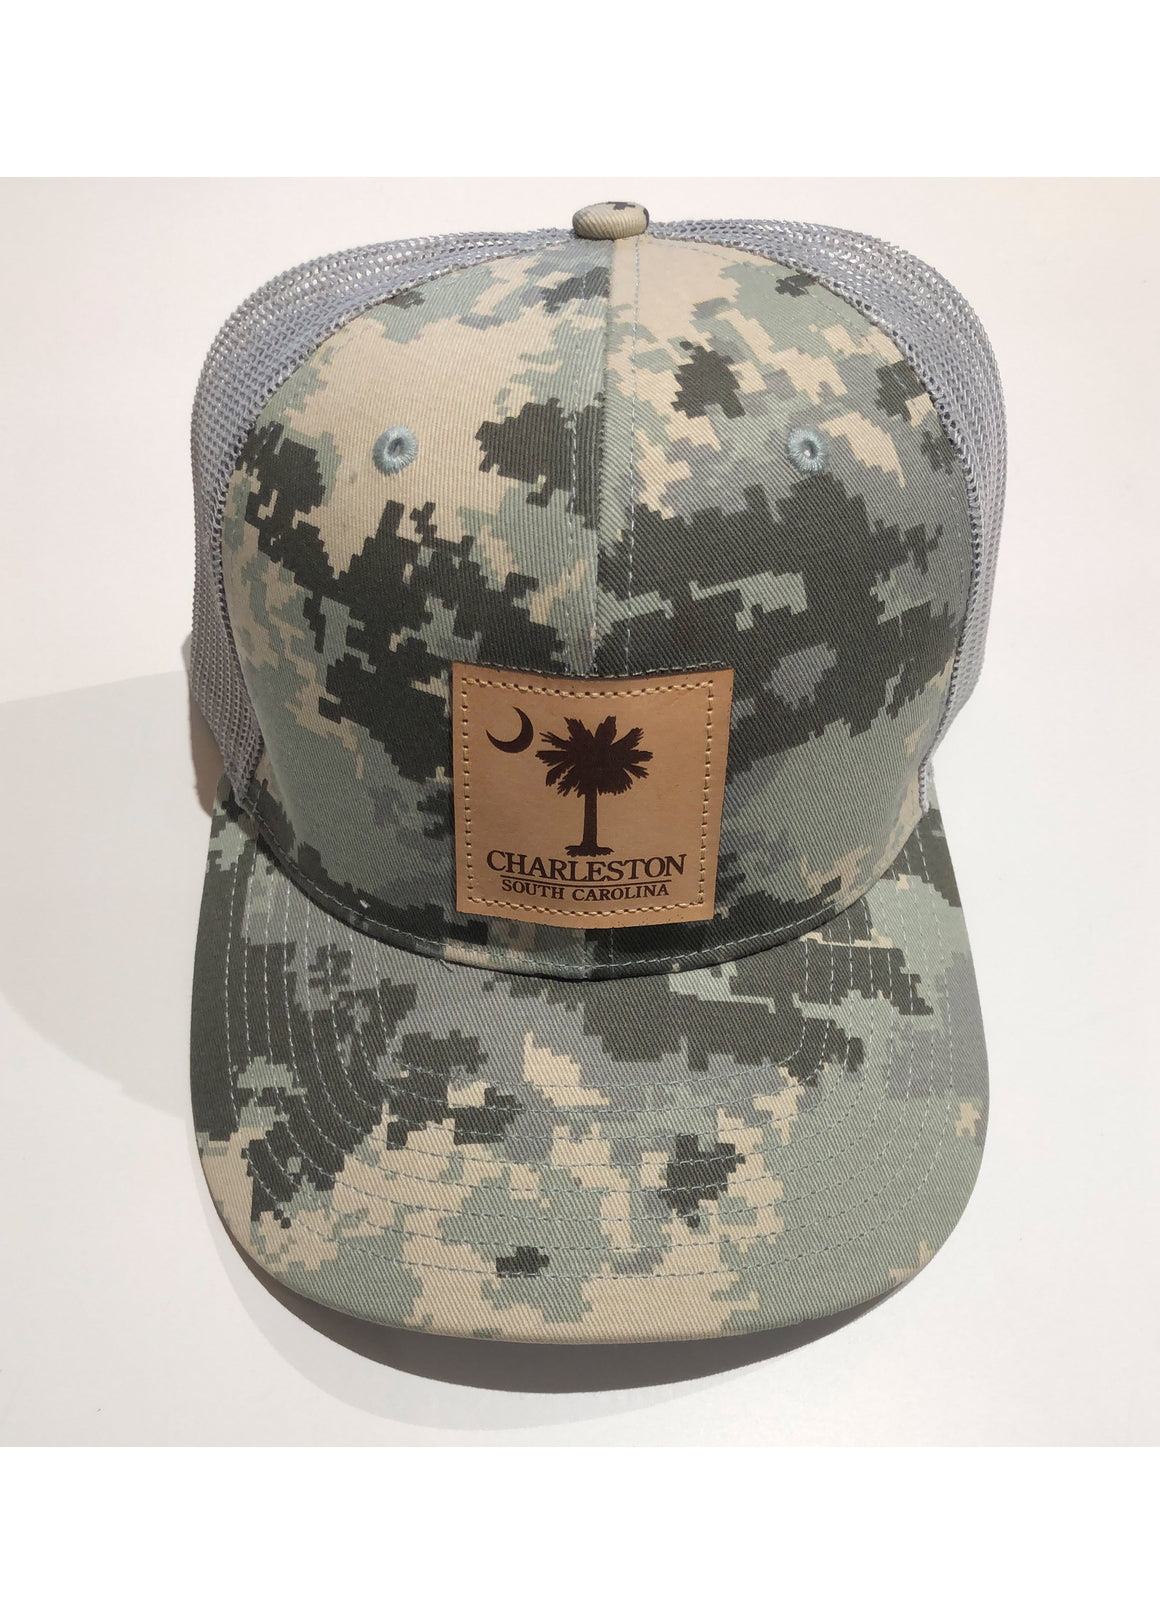 Trucker Hat with Palmetto and Crescent Moon Leather Patch | Light Green Digital Camo